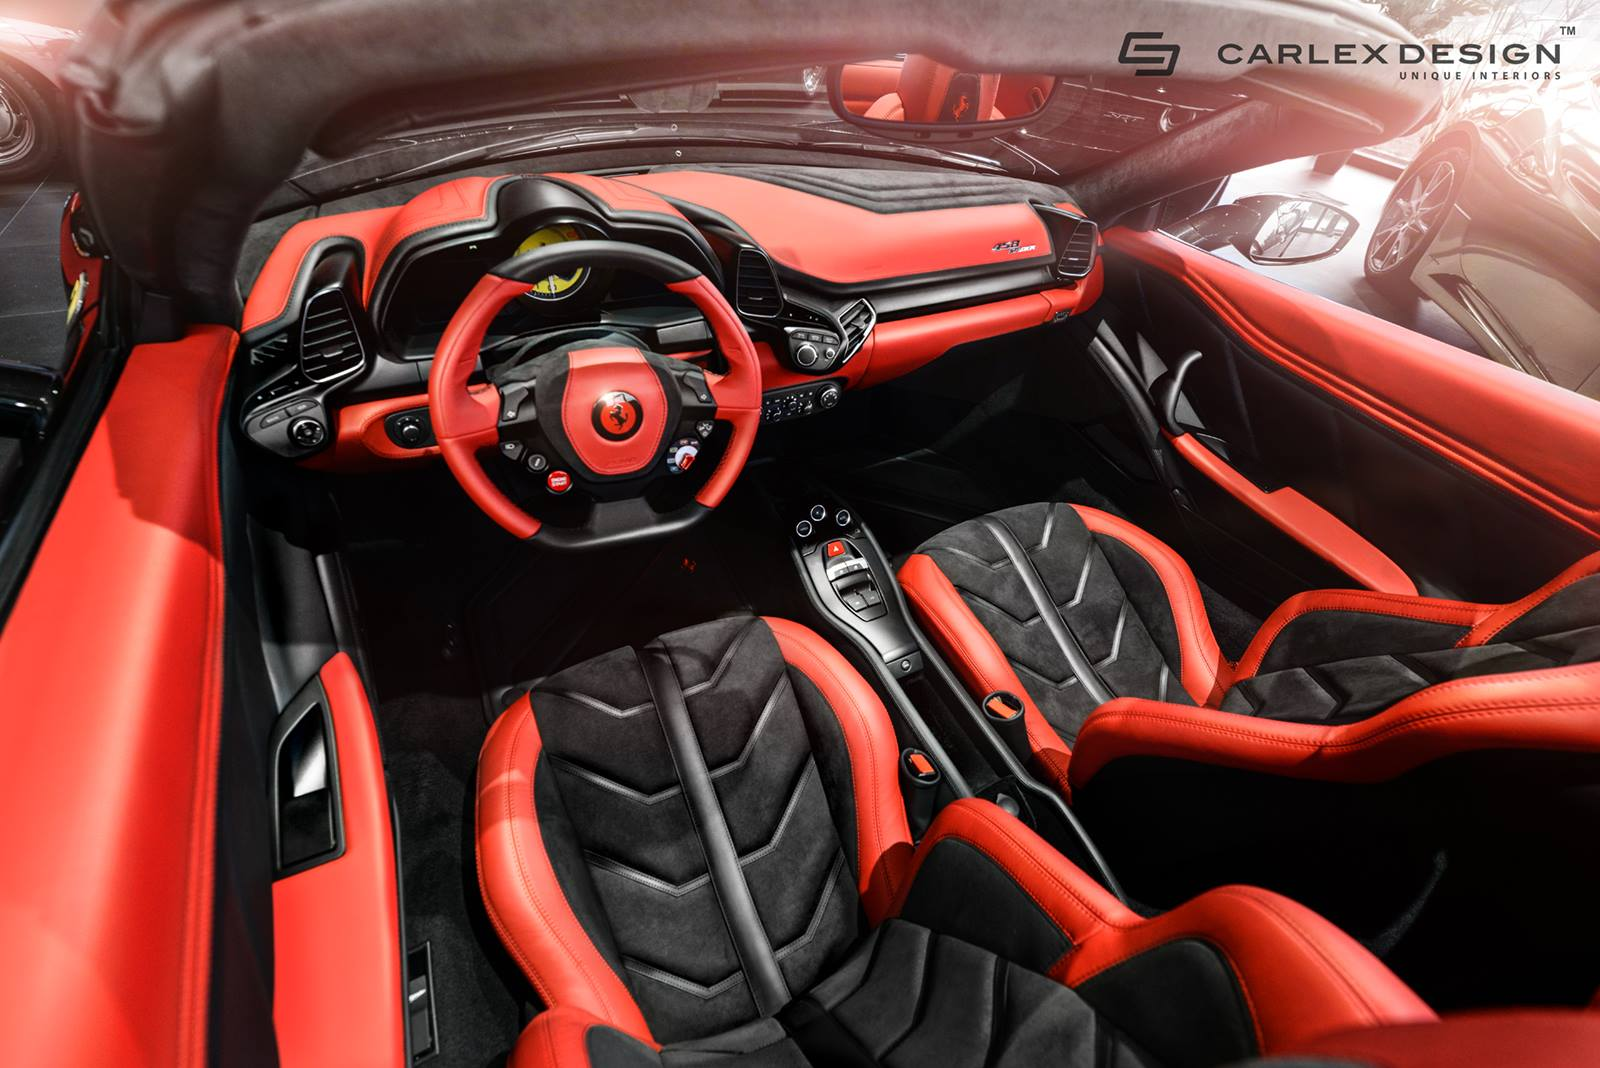 Ferrari 458 Spider Gets Stunning New Interior From Carlex